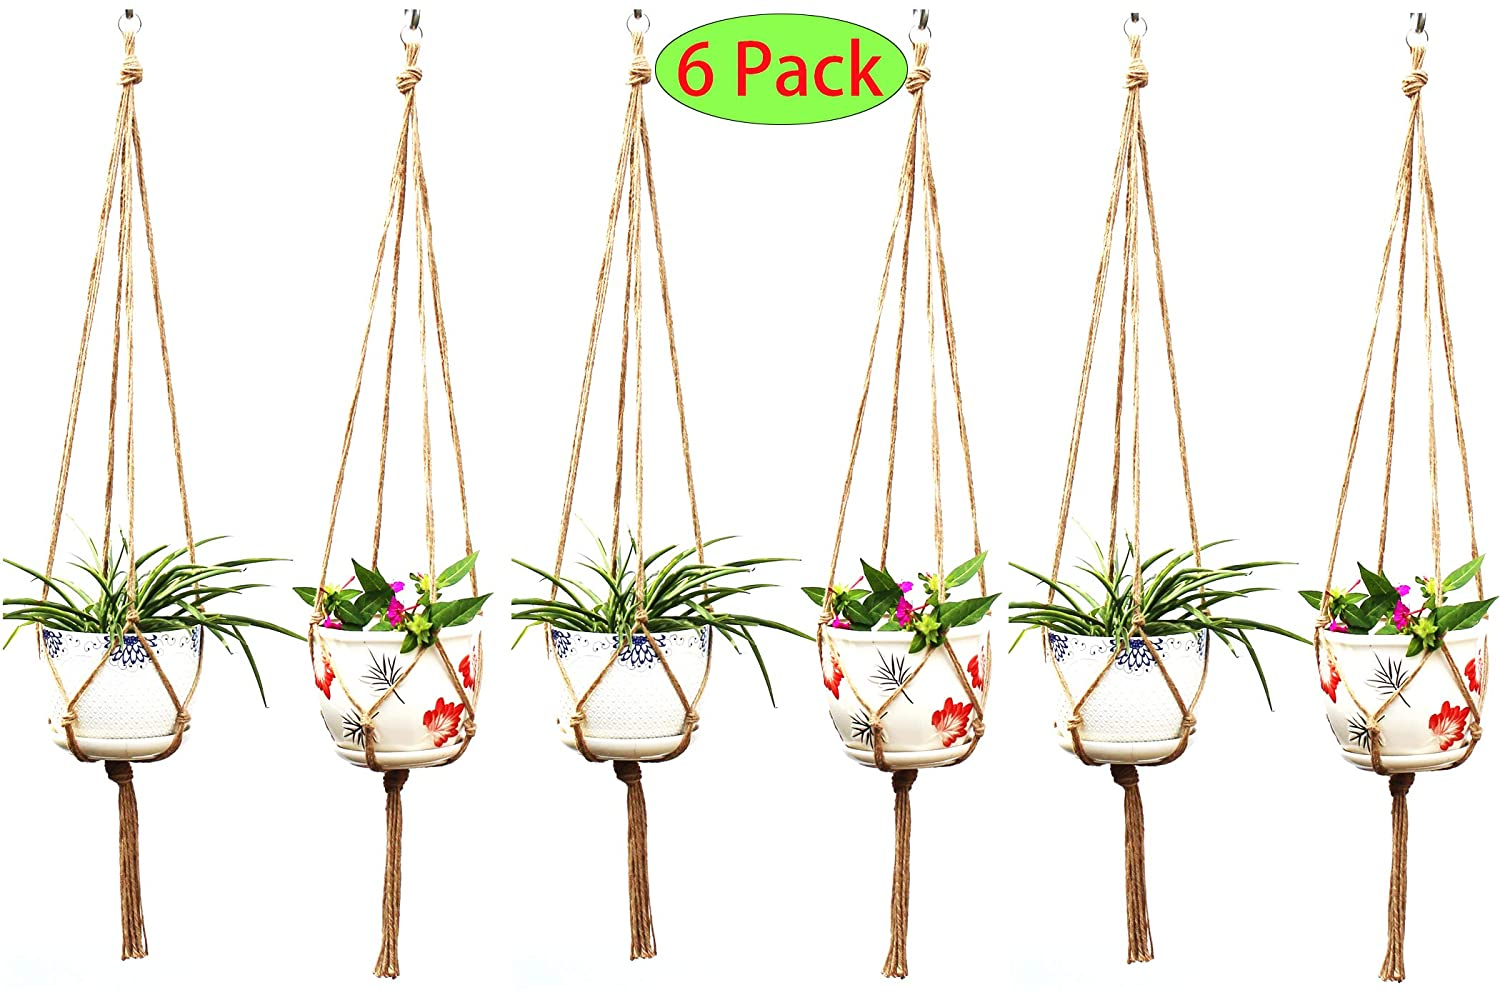 Plant Hanger Macrame Plant Hanger Flower Pot Holder for Indoor Outdoor – 6 Pack Handmade Plant Hanger Hanging Planter Wall Modern Boho Home Decor 4 Legs Plant Hanger – Jute 6pcs